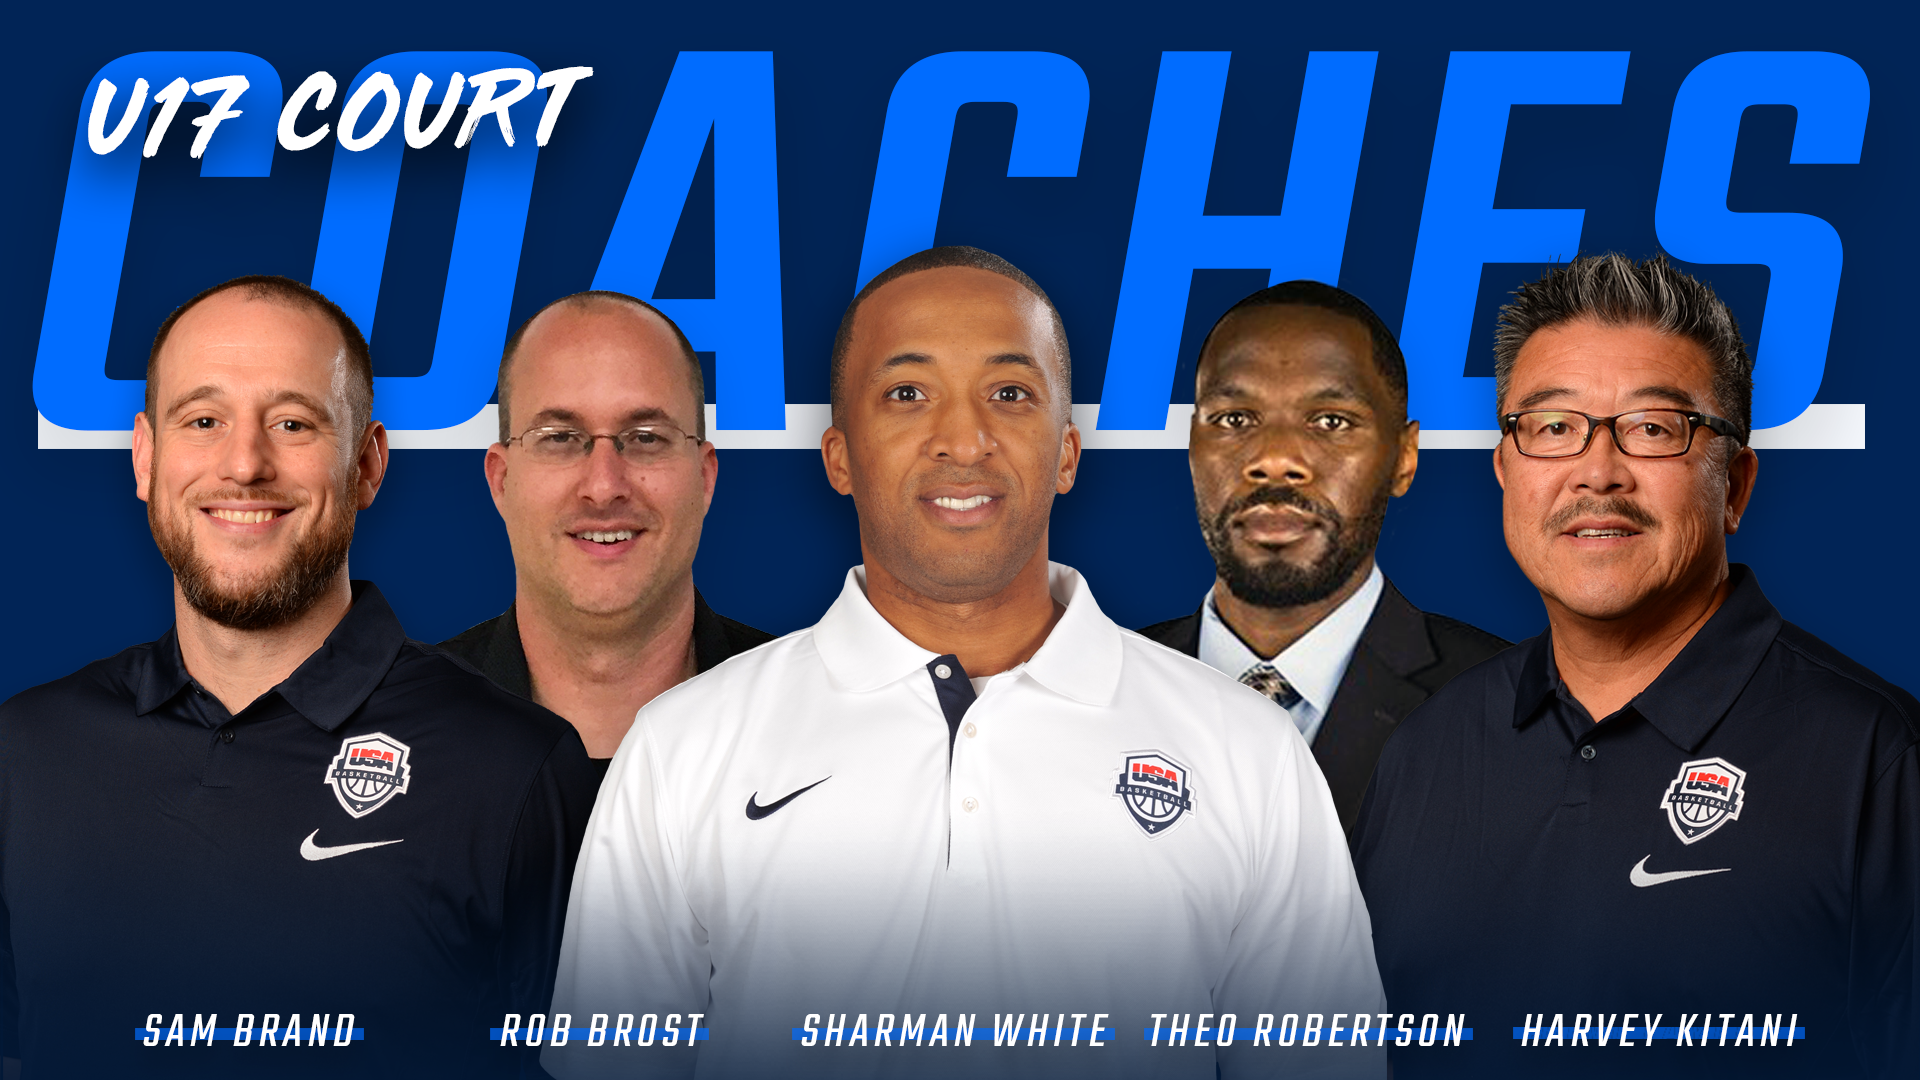 2018 USA Men's U17 Court Coaches